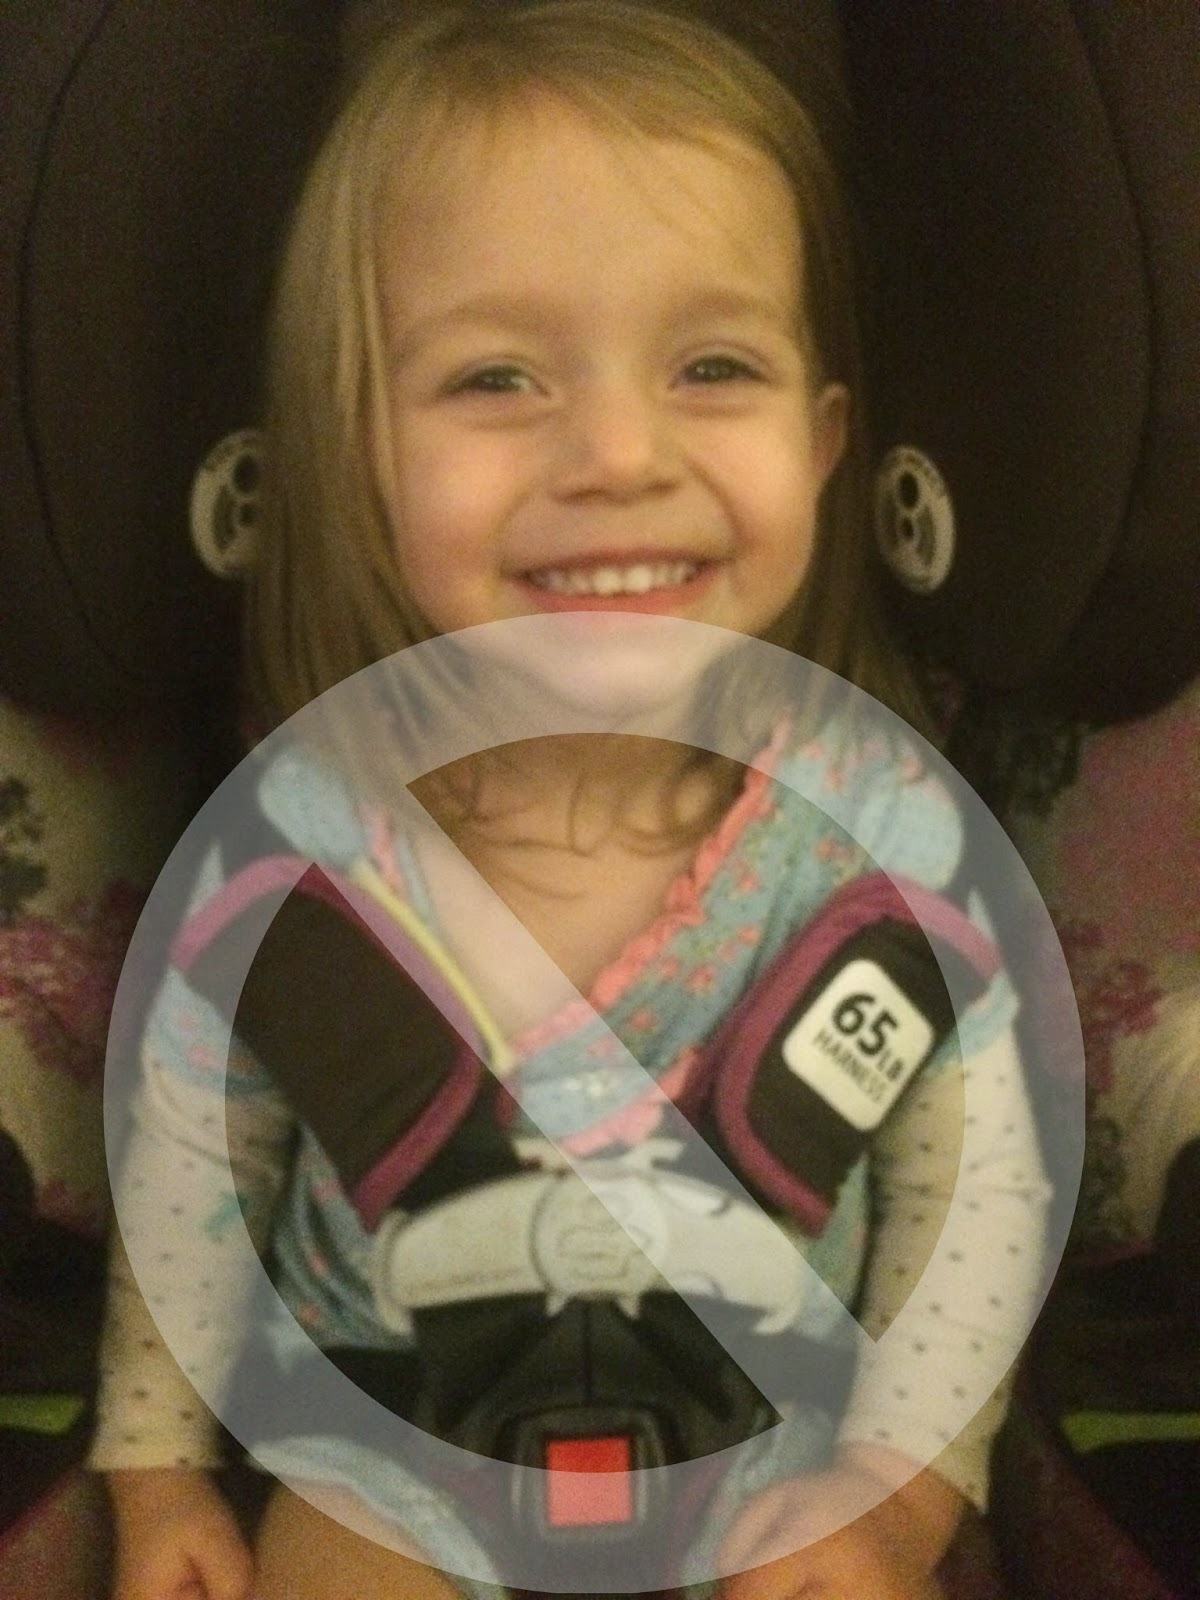 Car Seats And Winter Coat Safety Coat in Their Car Seat